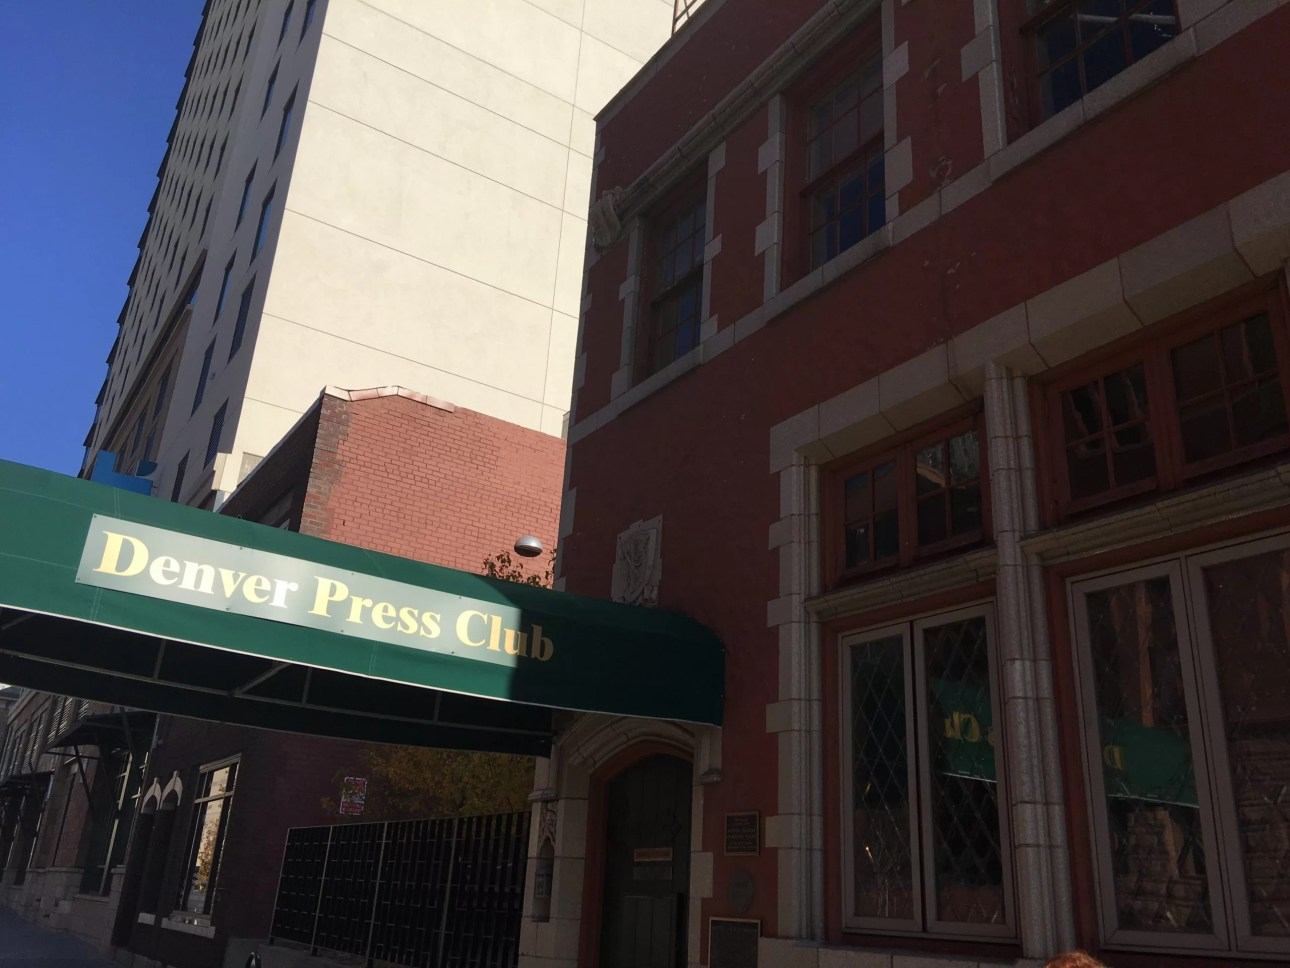 Green canopy at entrance of Denver Press club